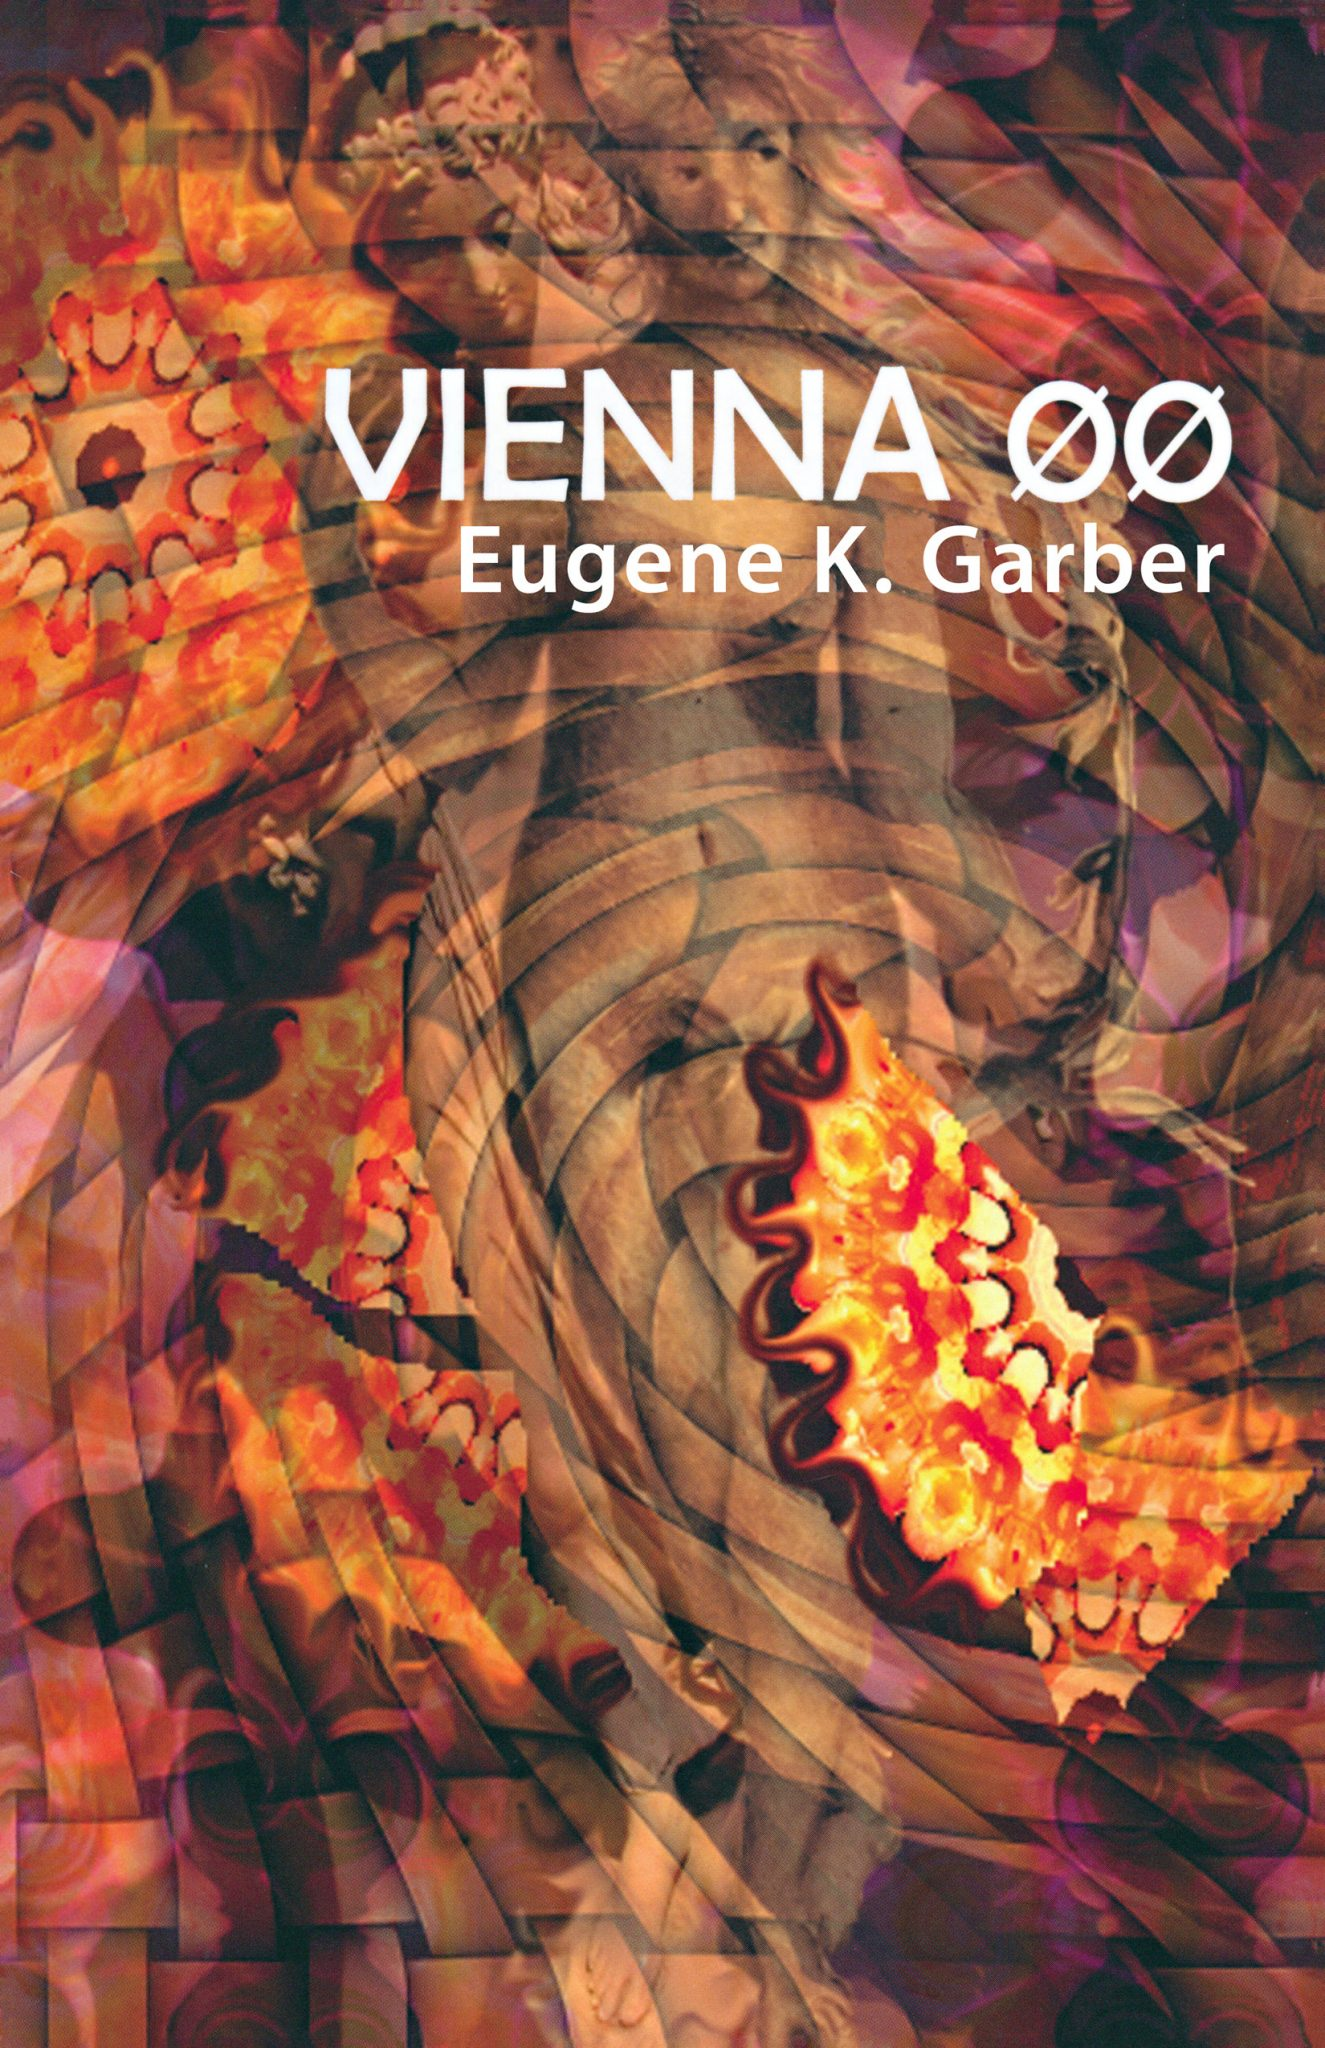 Vienna ØØ, Book 1 of The Eroica Trilogy